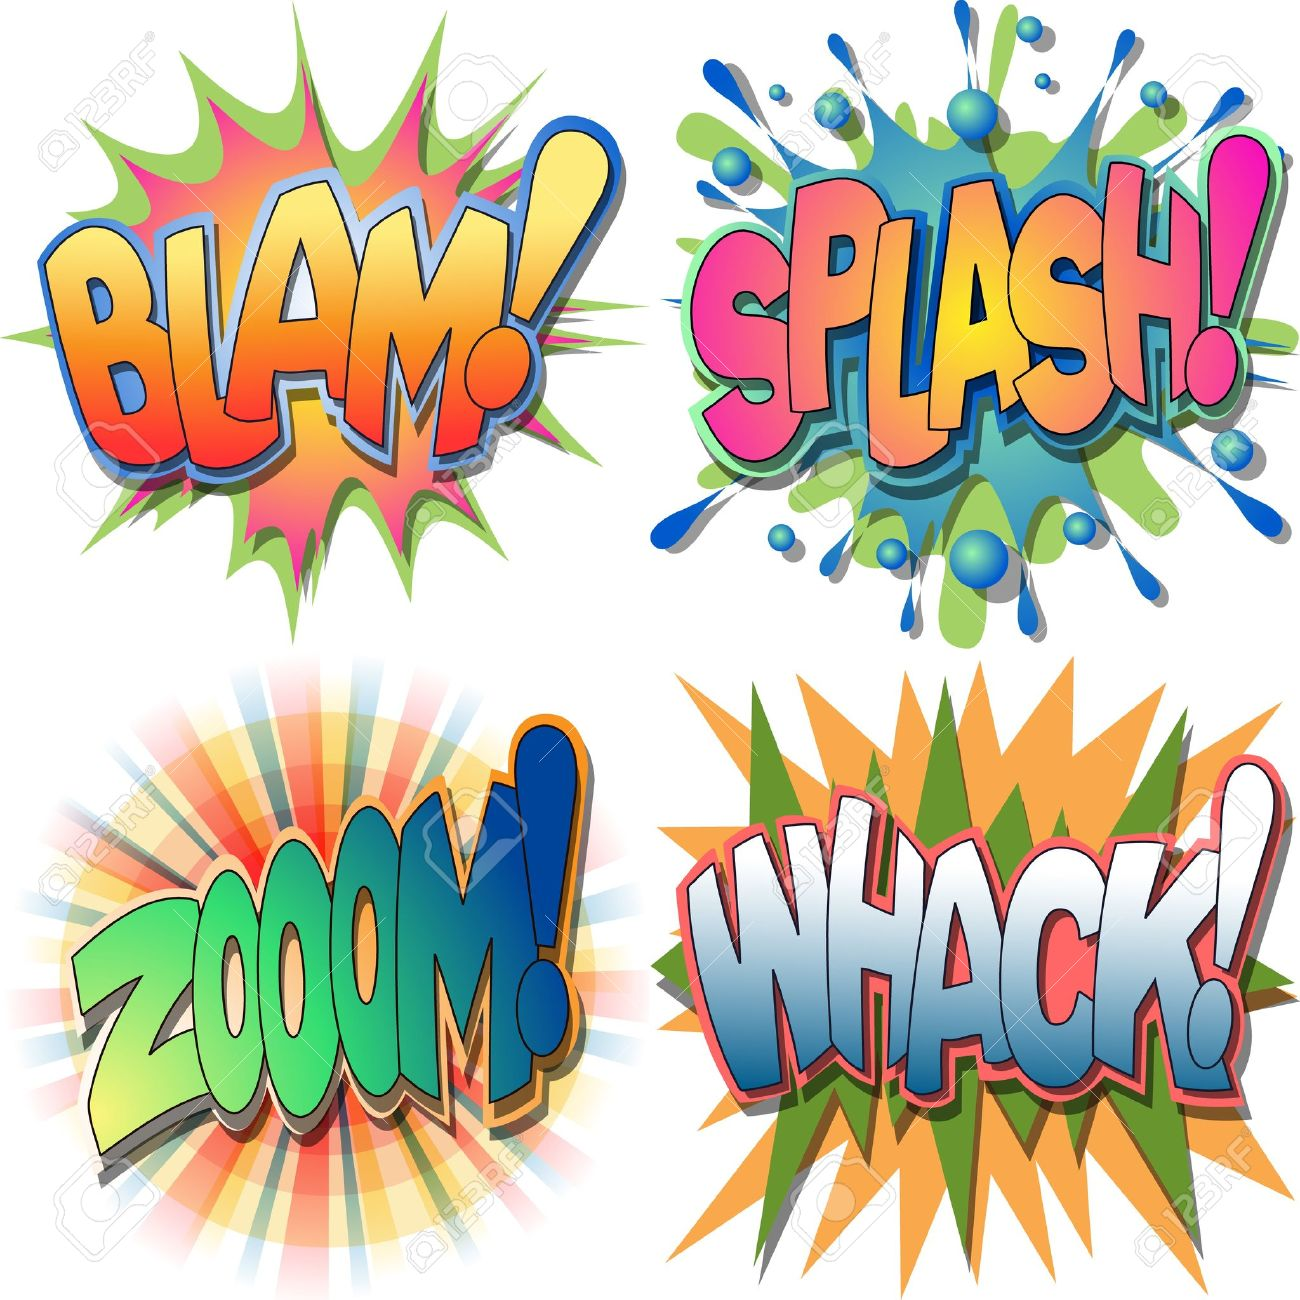 A Selection Of Comic Book Exclamations And Action Word IllustrationsBlam SplashZoom